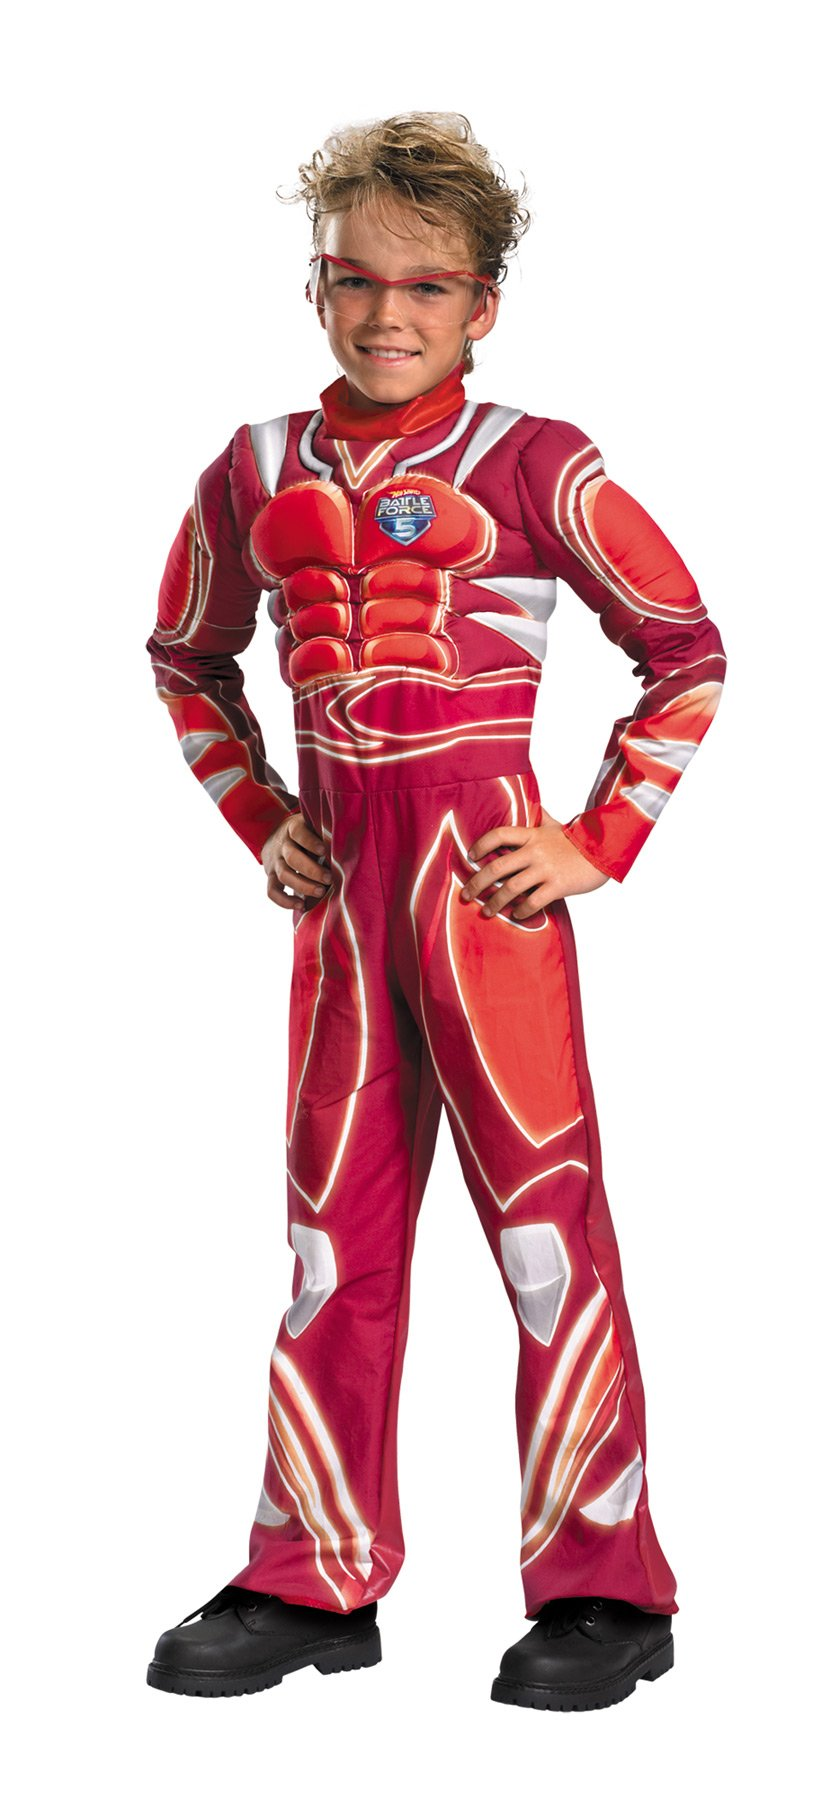 Hot Wheels Vert Wheeler Boys Costume Muscle 4-6